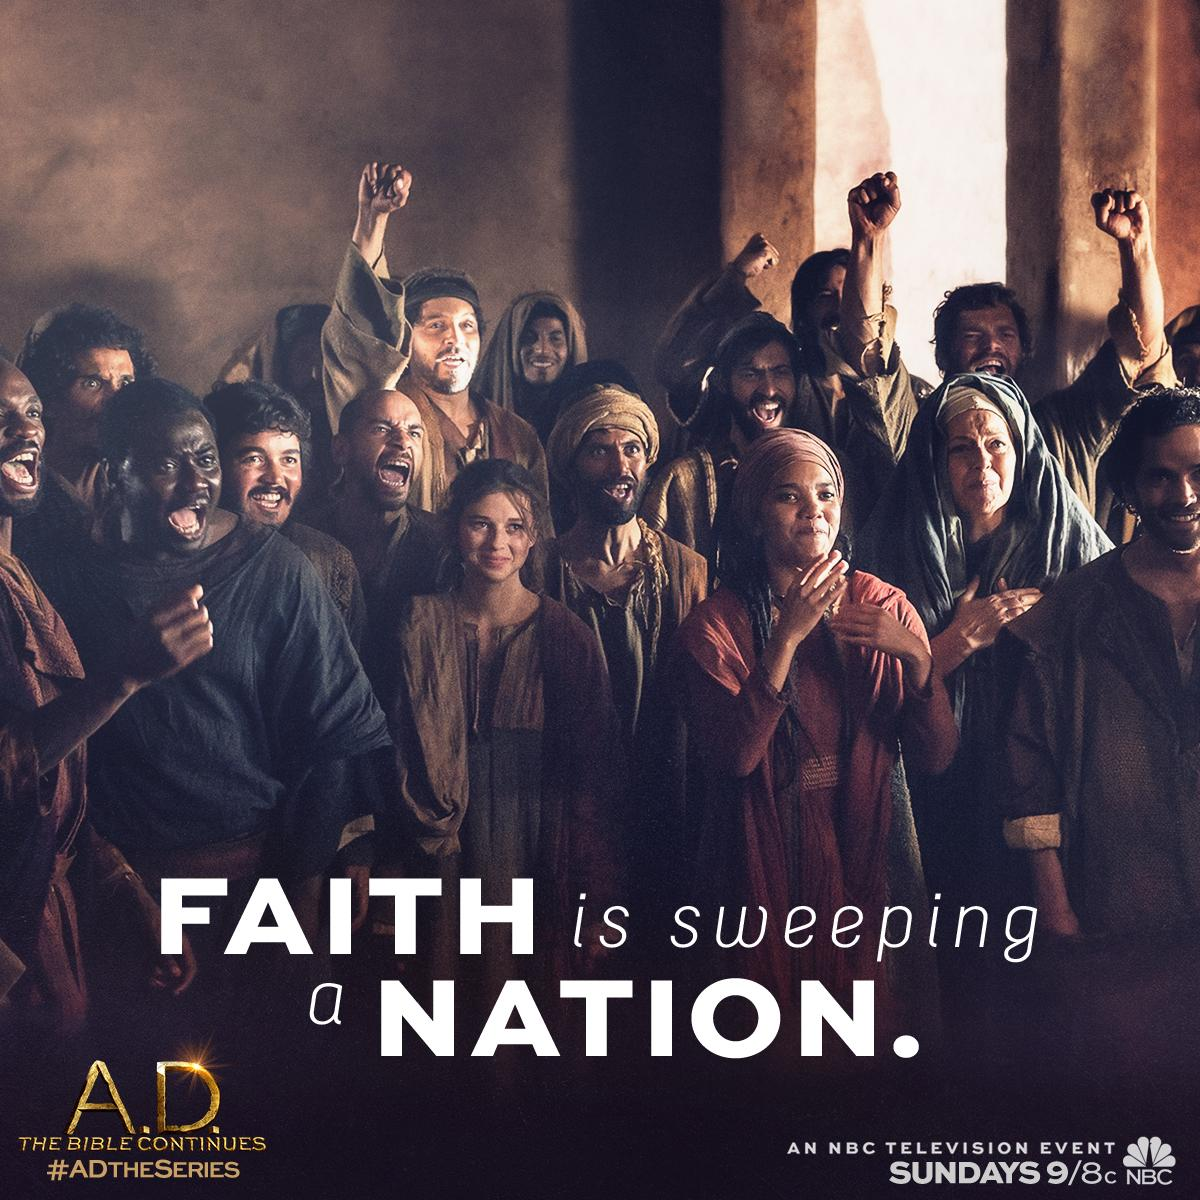 Believers are taking a stand… Join the movement, this Sunday on #ADTheSeries, 9/8c on @NBC! #SpreadTheWord http://t.co/IjhvTvpNGC